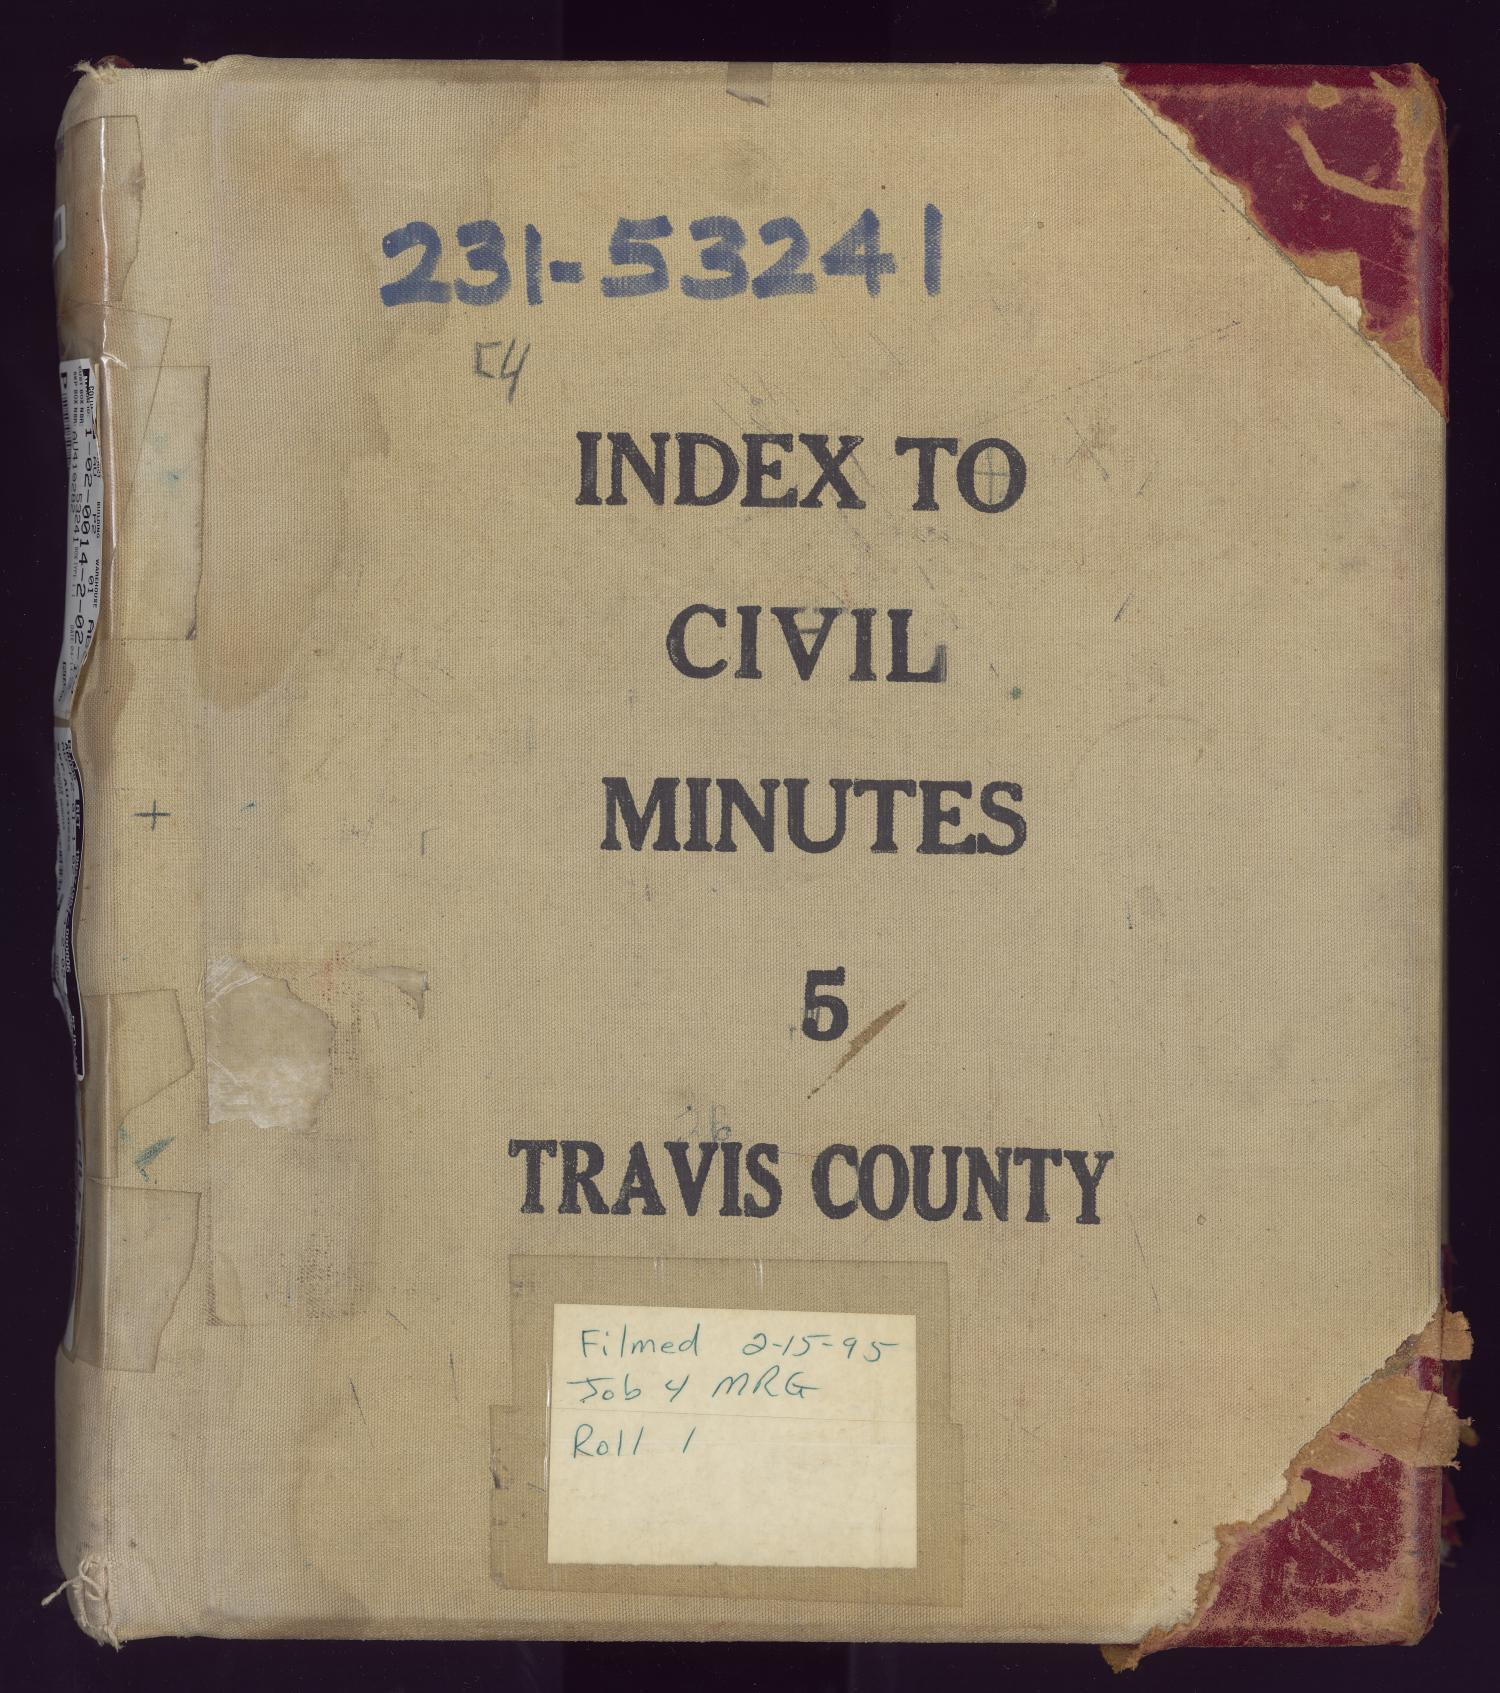 District Clerk | Travis County Archives